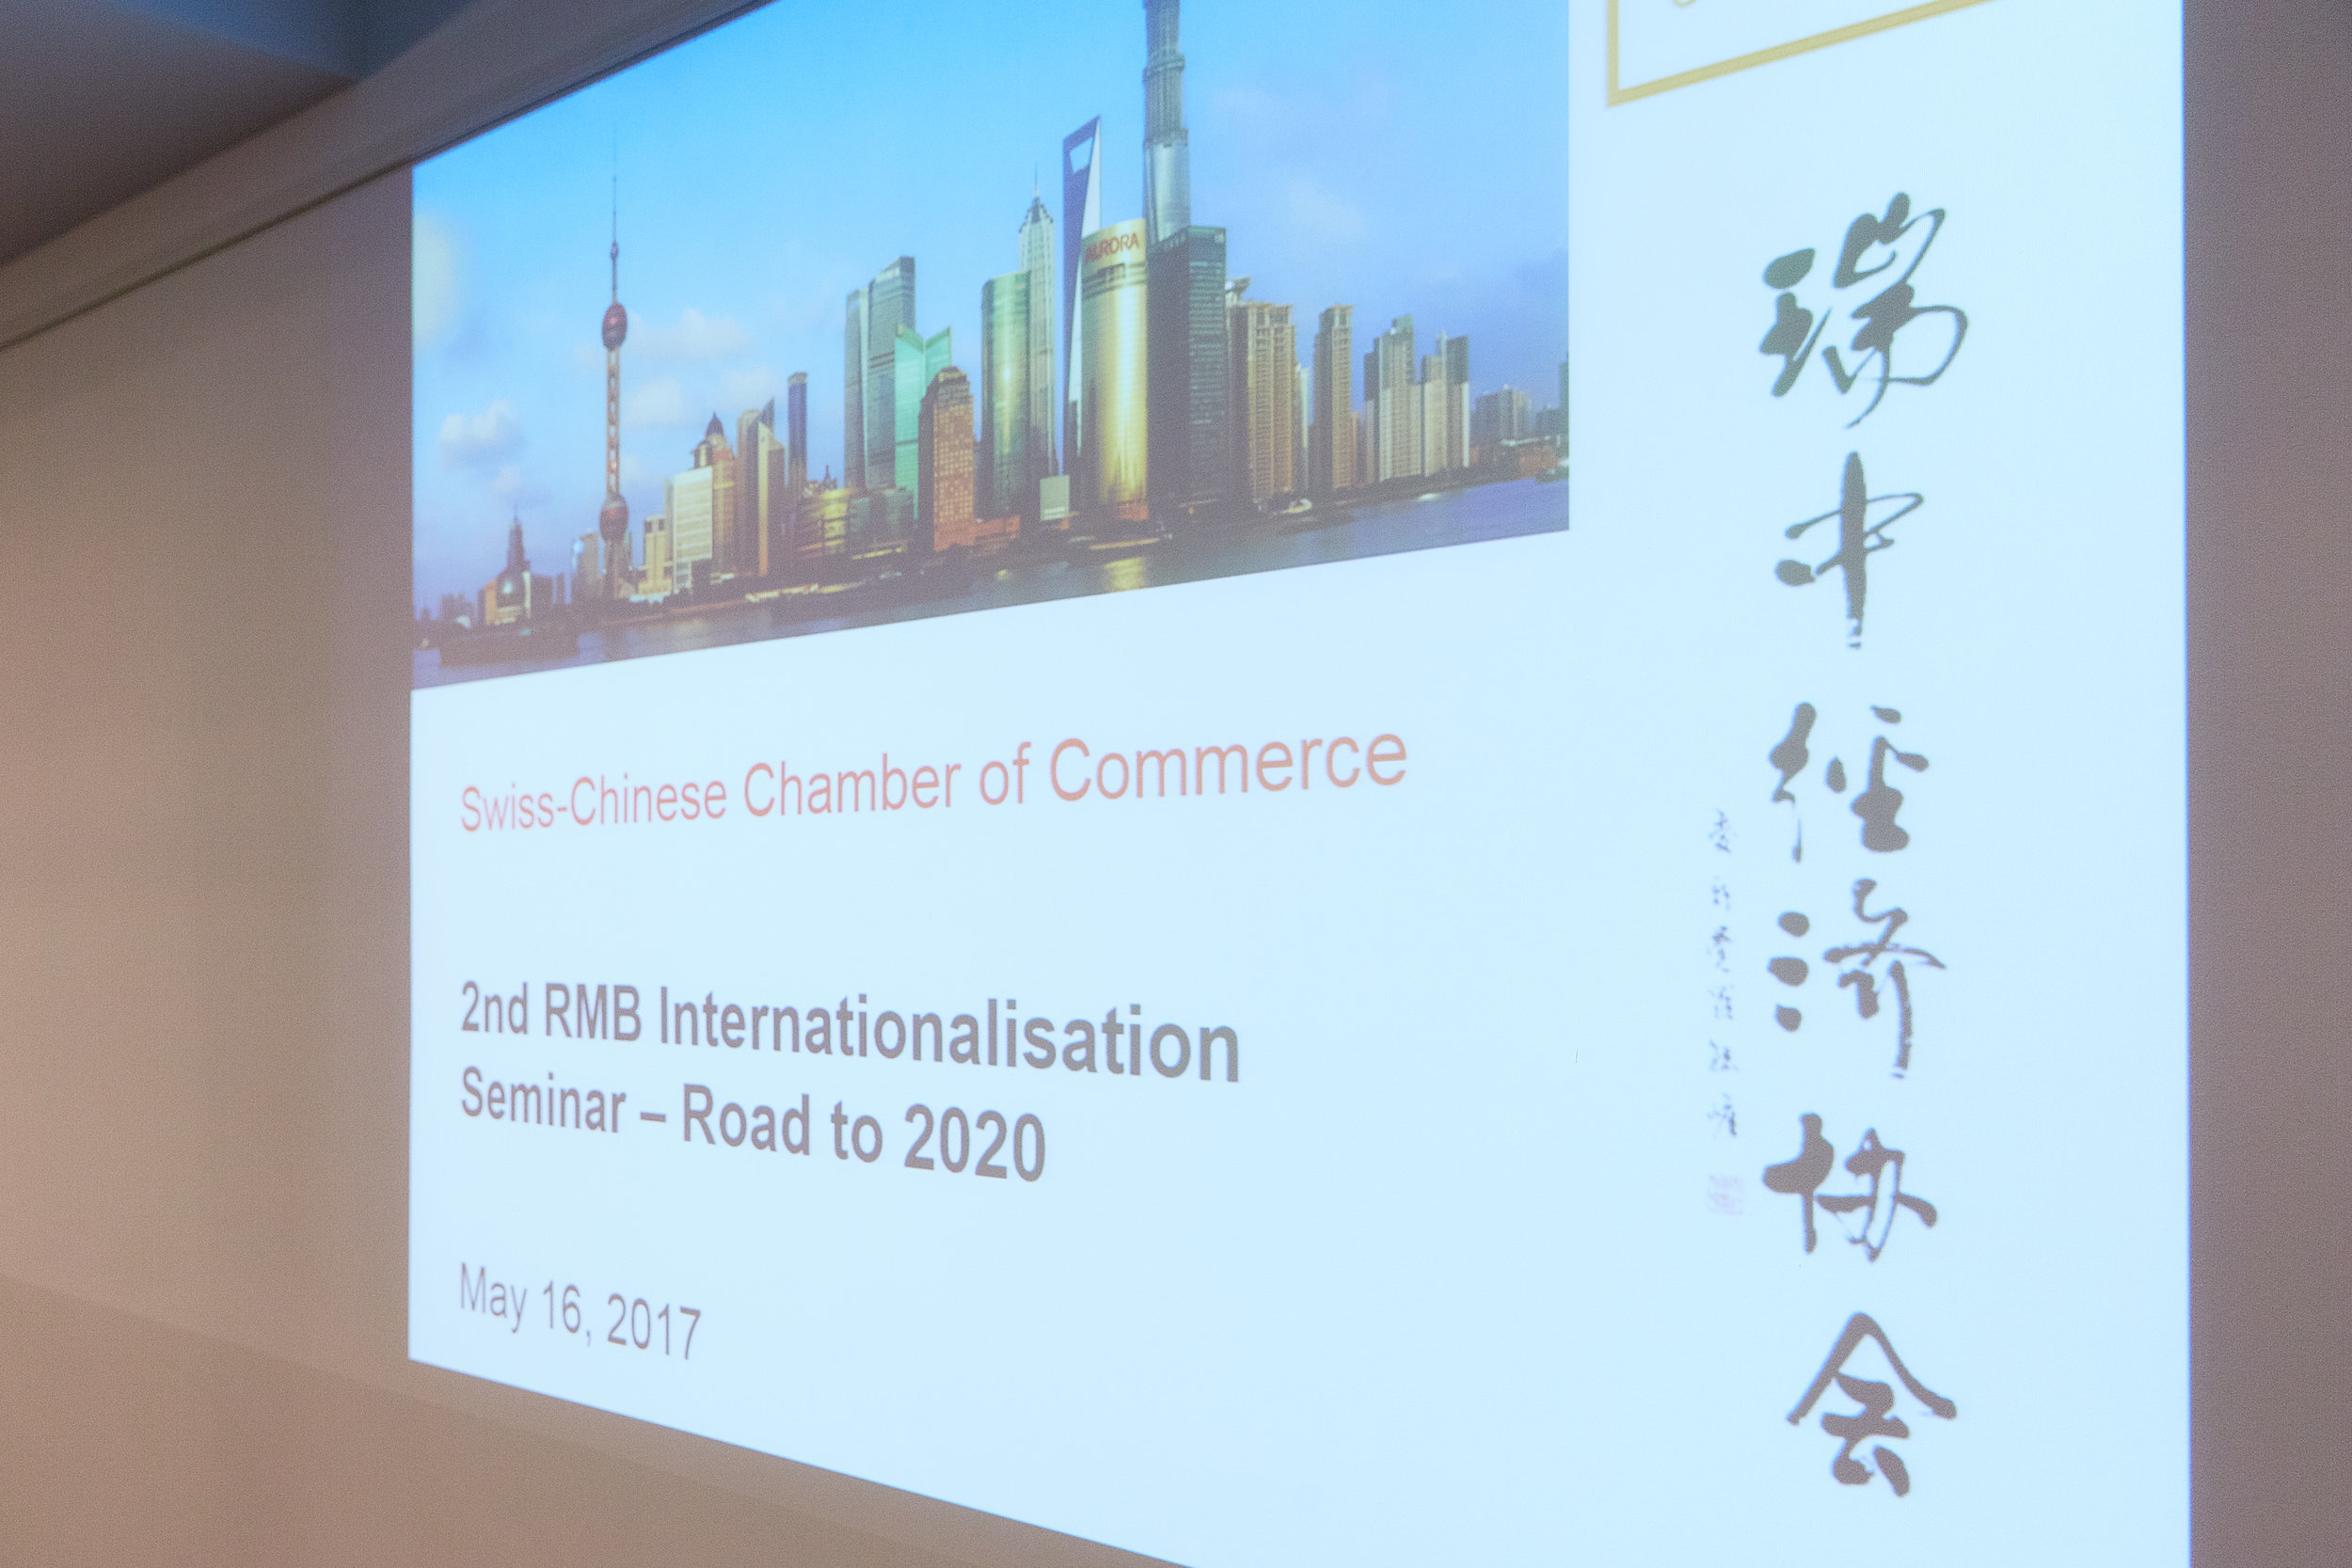 RMB Internationalization � Road to 2020